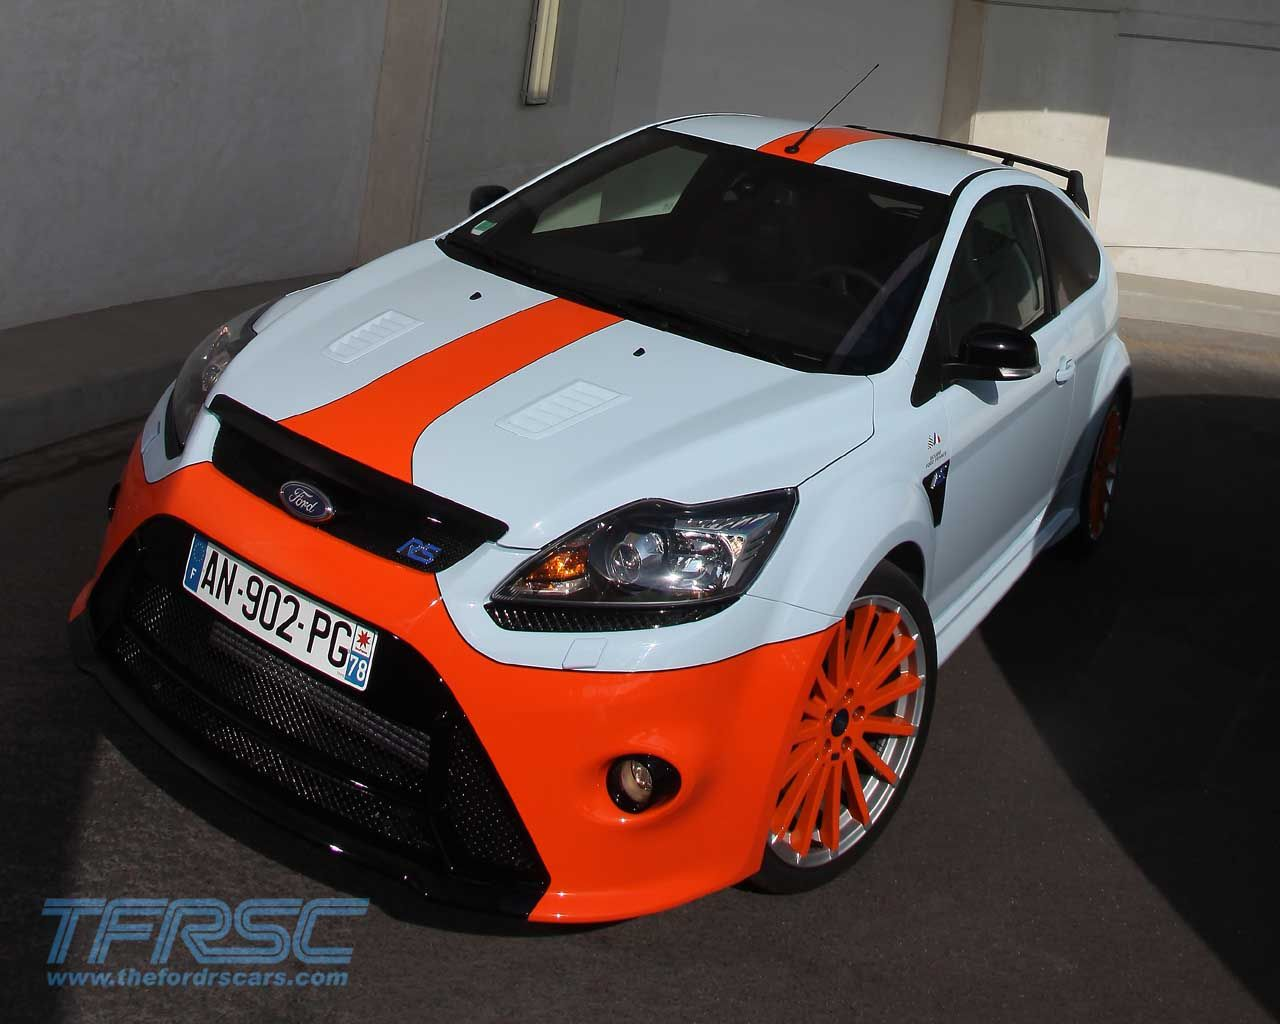 Ford Focus Rs Gulf Livery Ford Focus Rs Ford Focus Sprint Cars